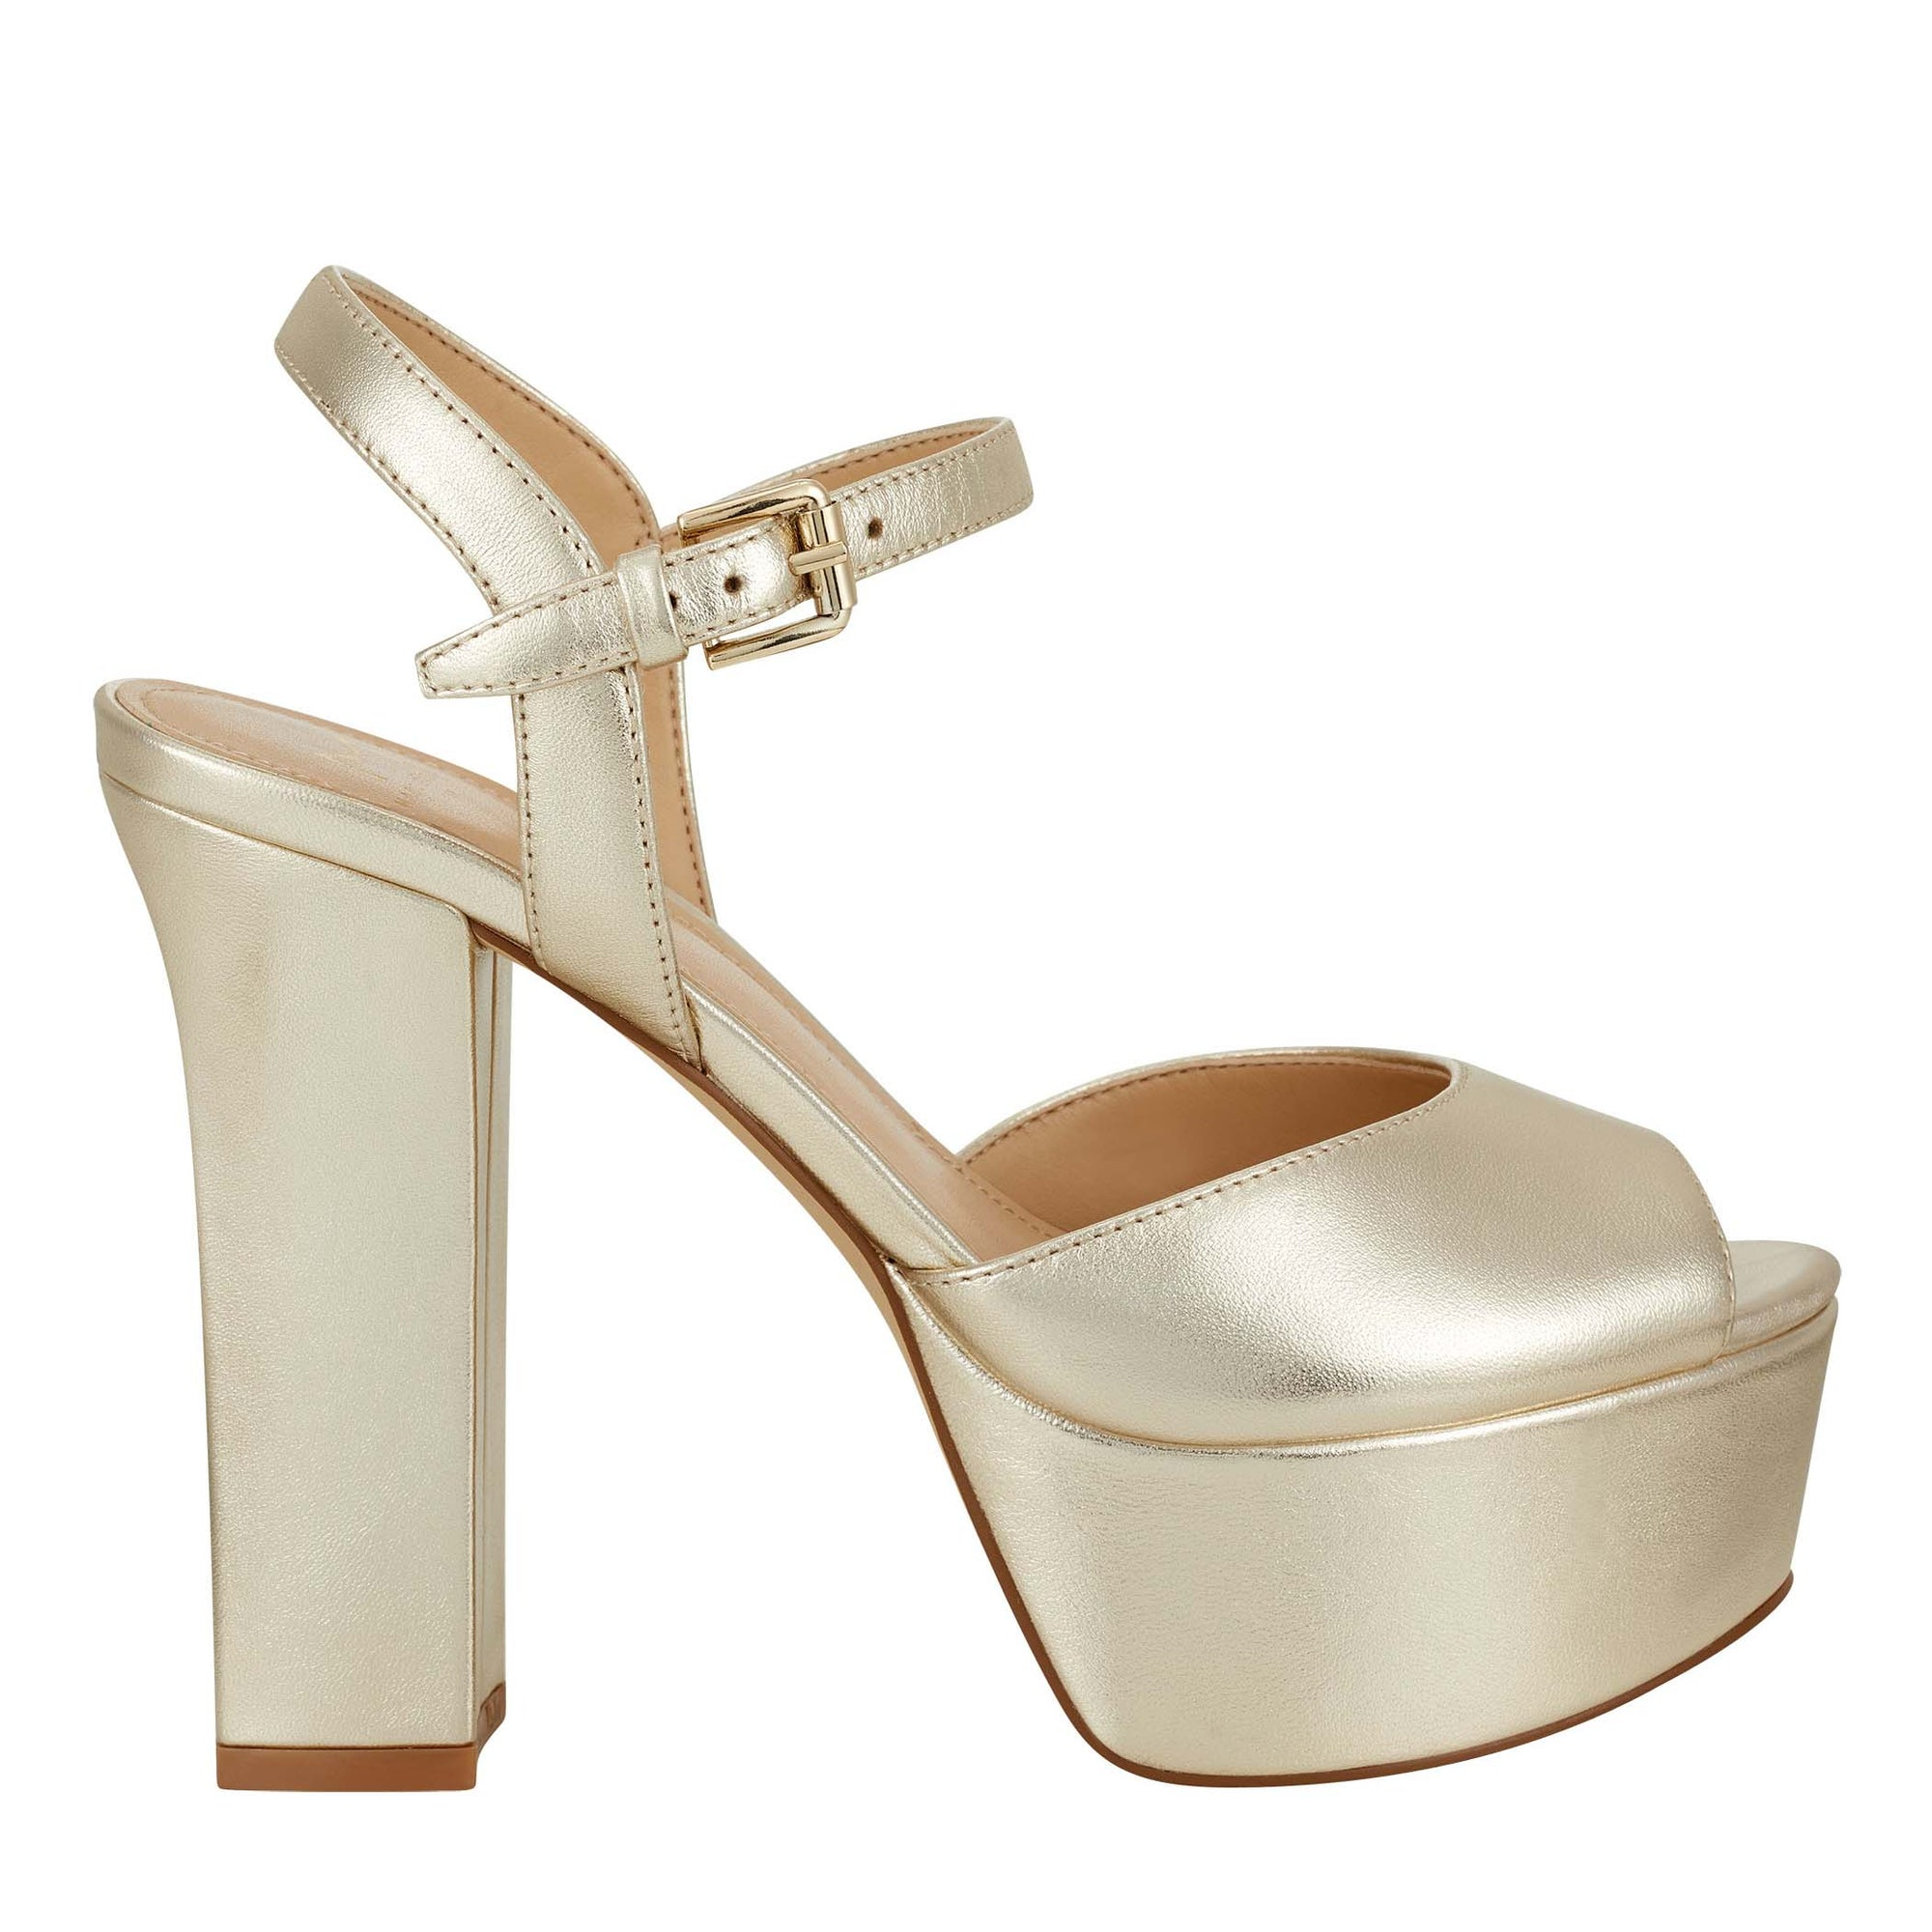 stacey-platform-sandal-in-gold-leather